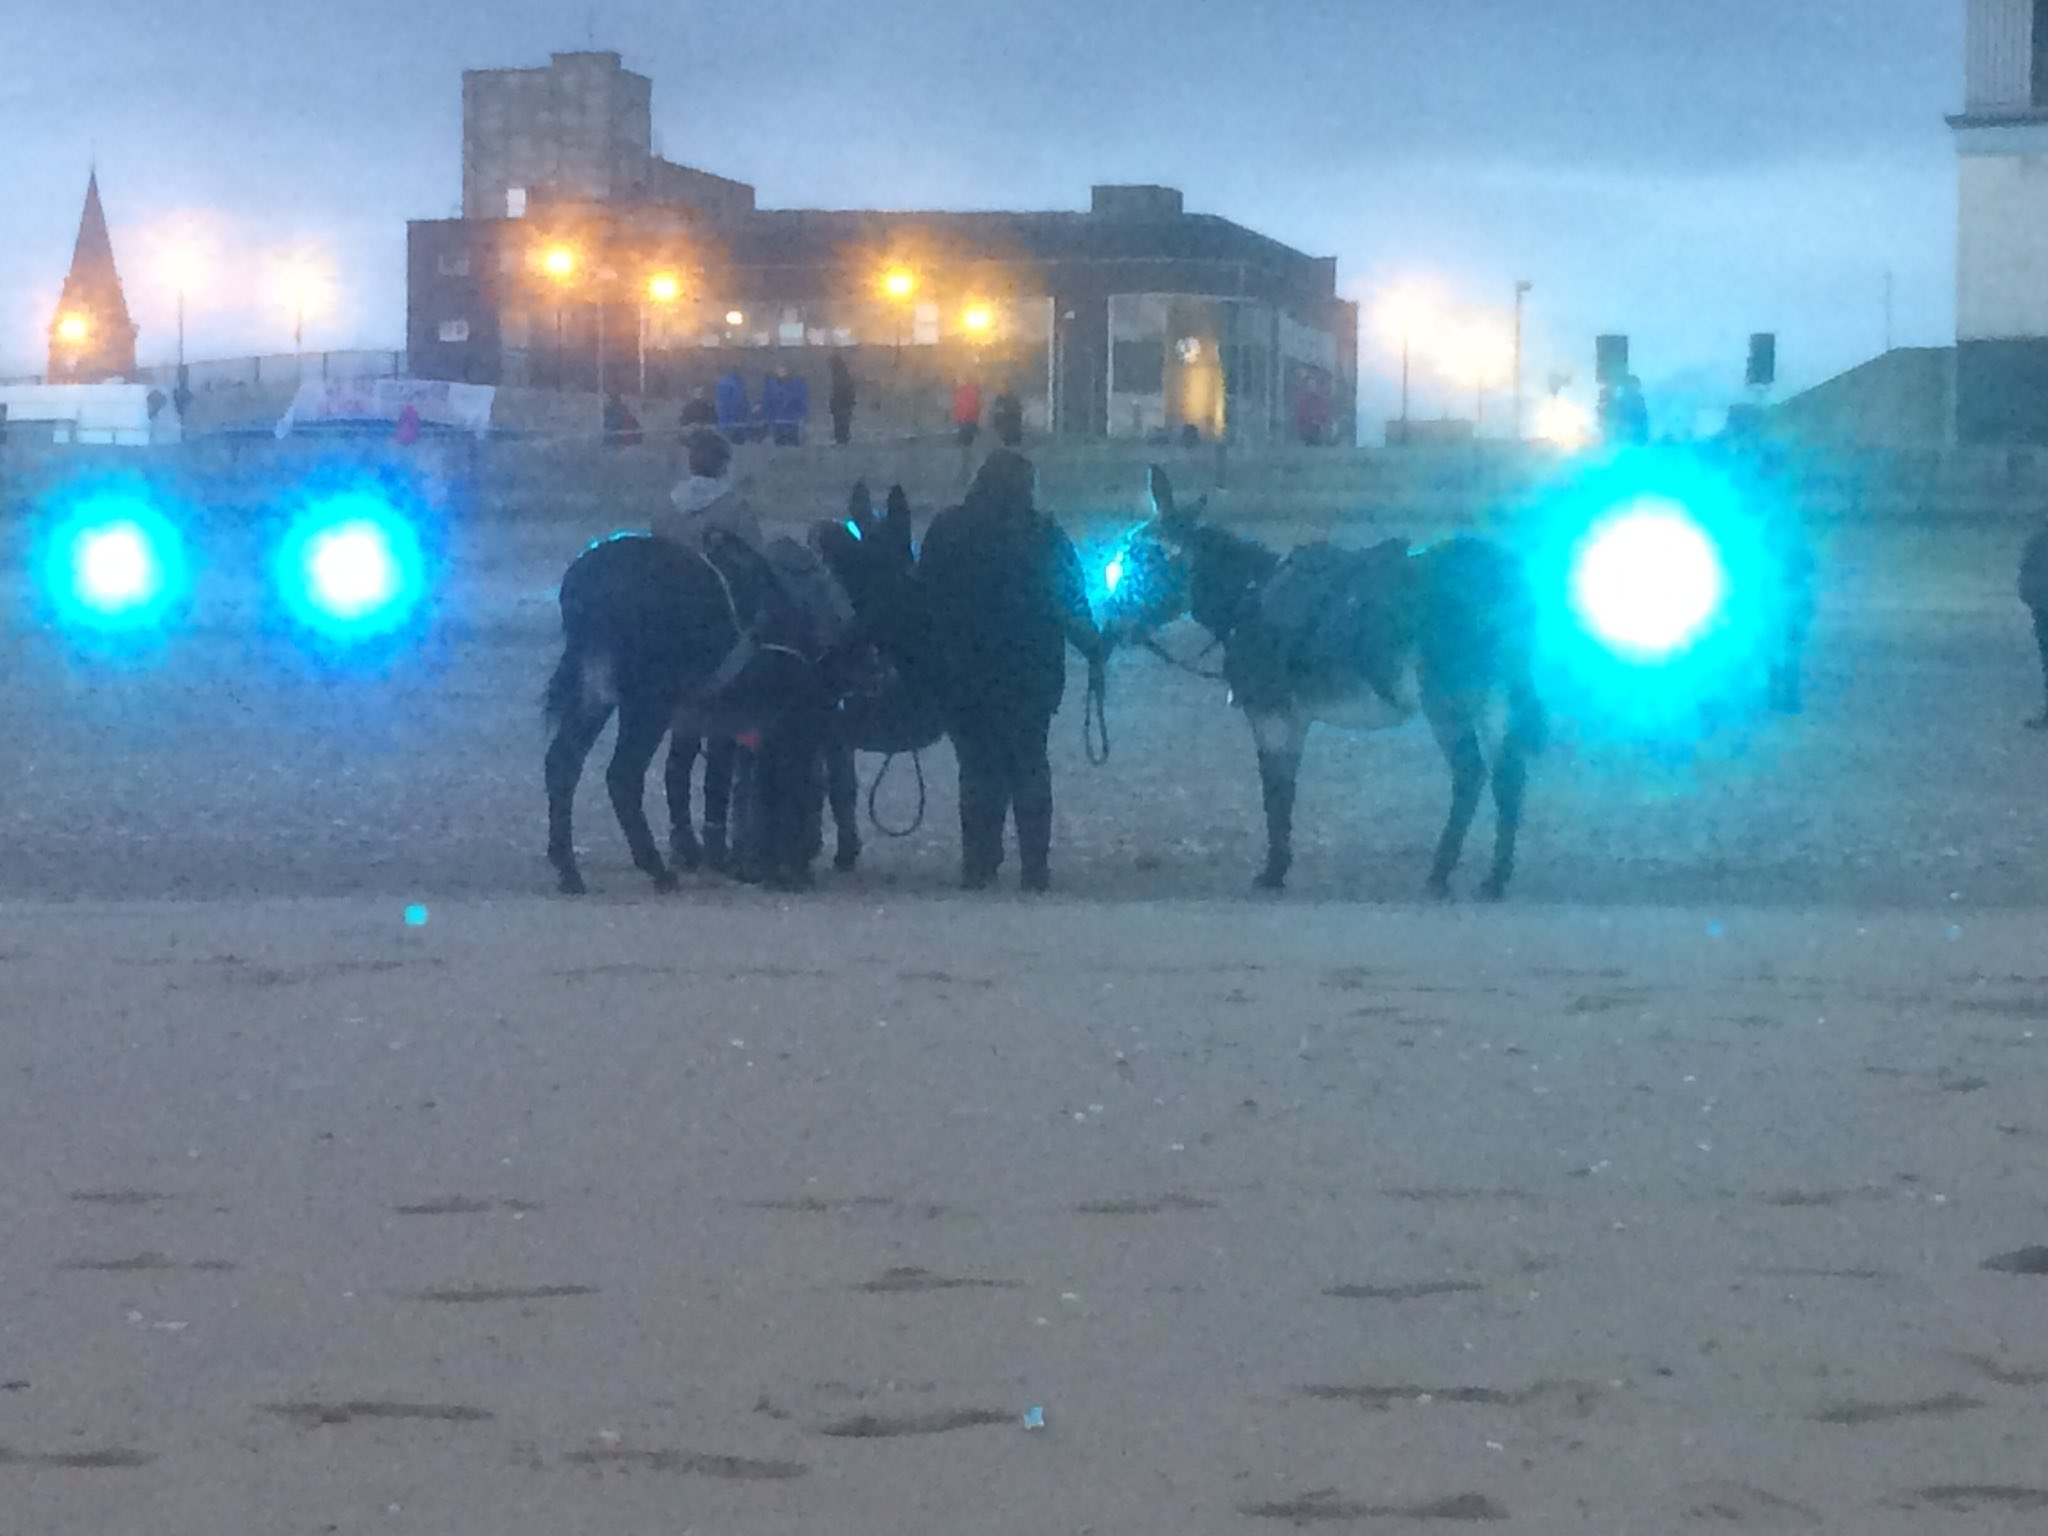 Wonderful show from @NTWtweets tonight: sand and soil, roots and belonging... oh, and seaside donkeys too #Rhyl #LiftedbyBeauty https://t.co/sIKbkNPSLR